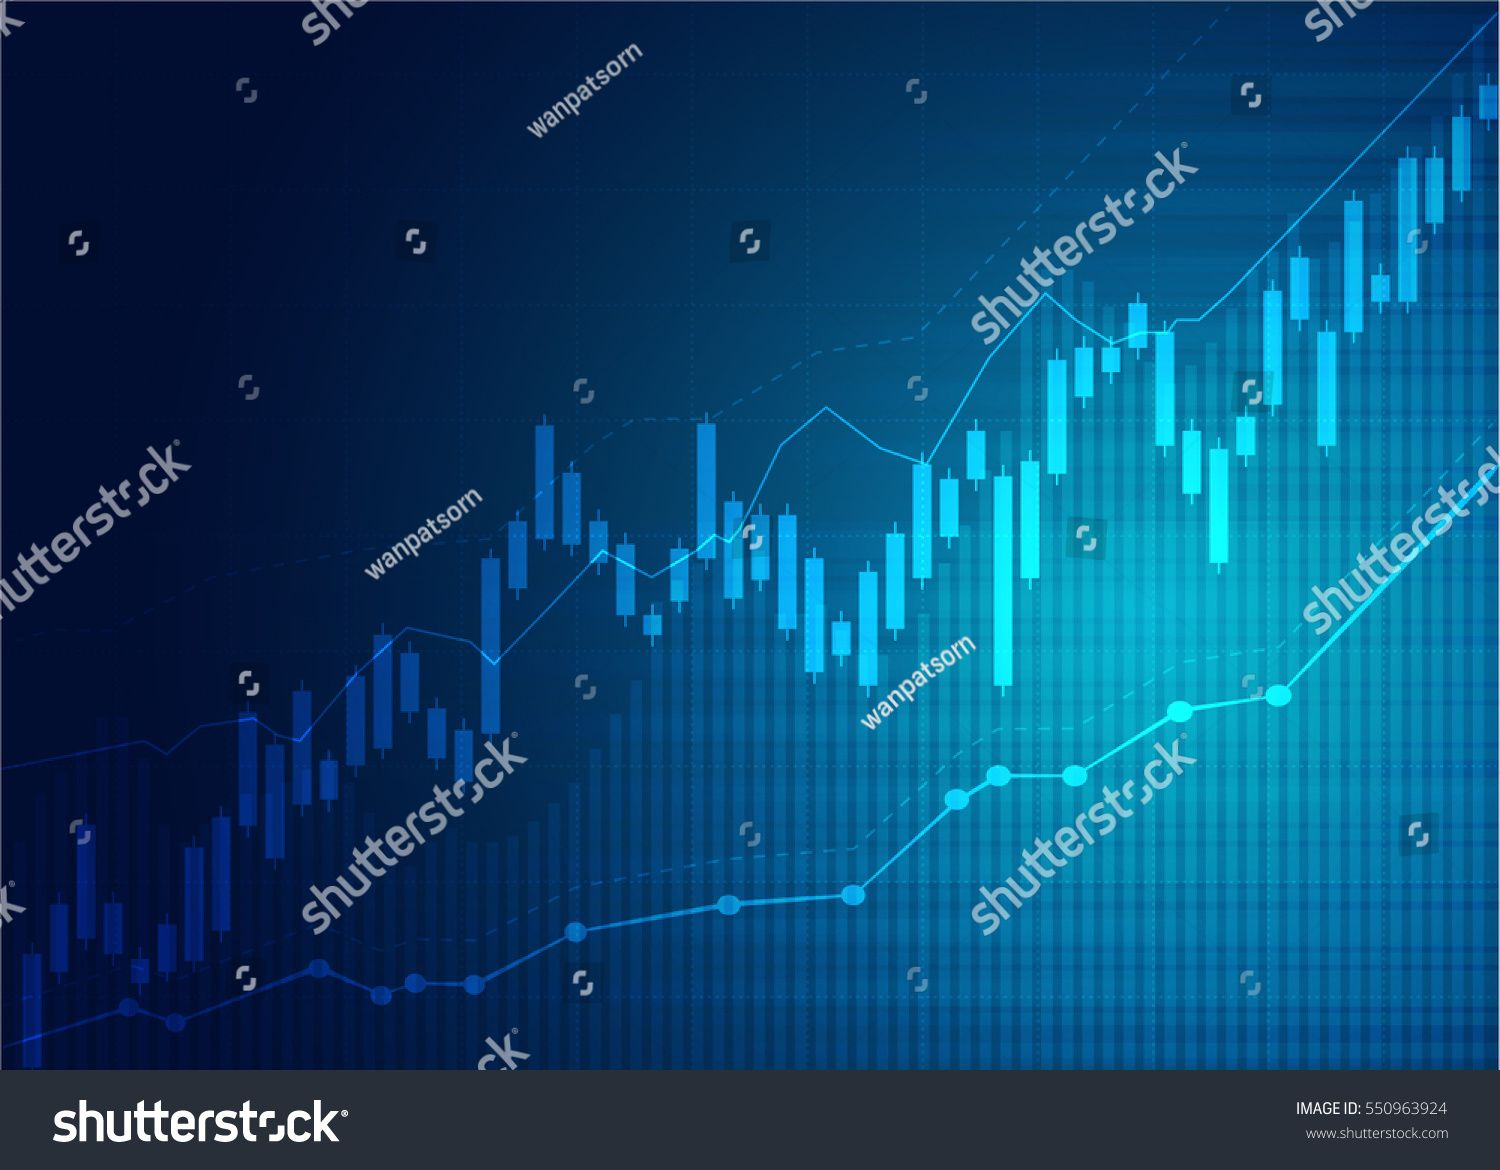 Candle Stick Graph Chart Of Stock Market Investment Trading Bullish Point Bearish Point Trend Of Graph Vector D Stock Market Stock Market Investing Graphing